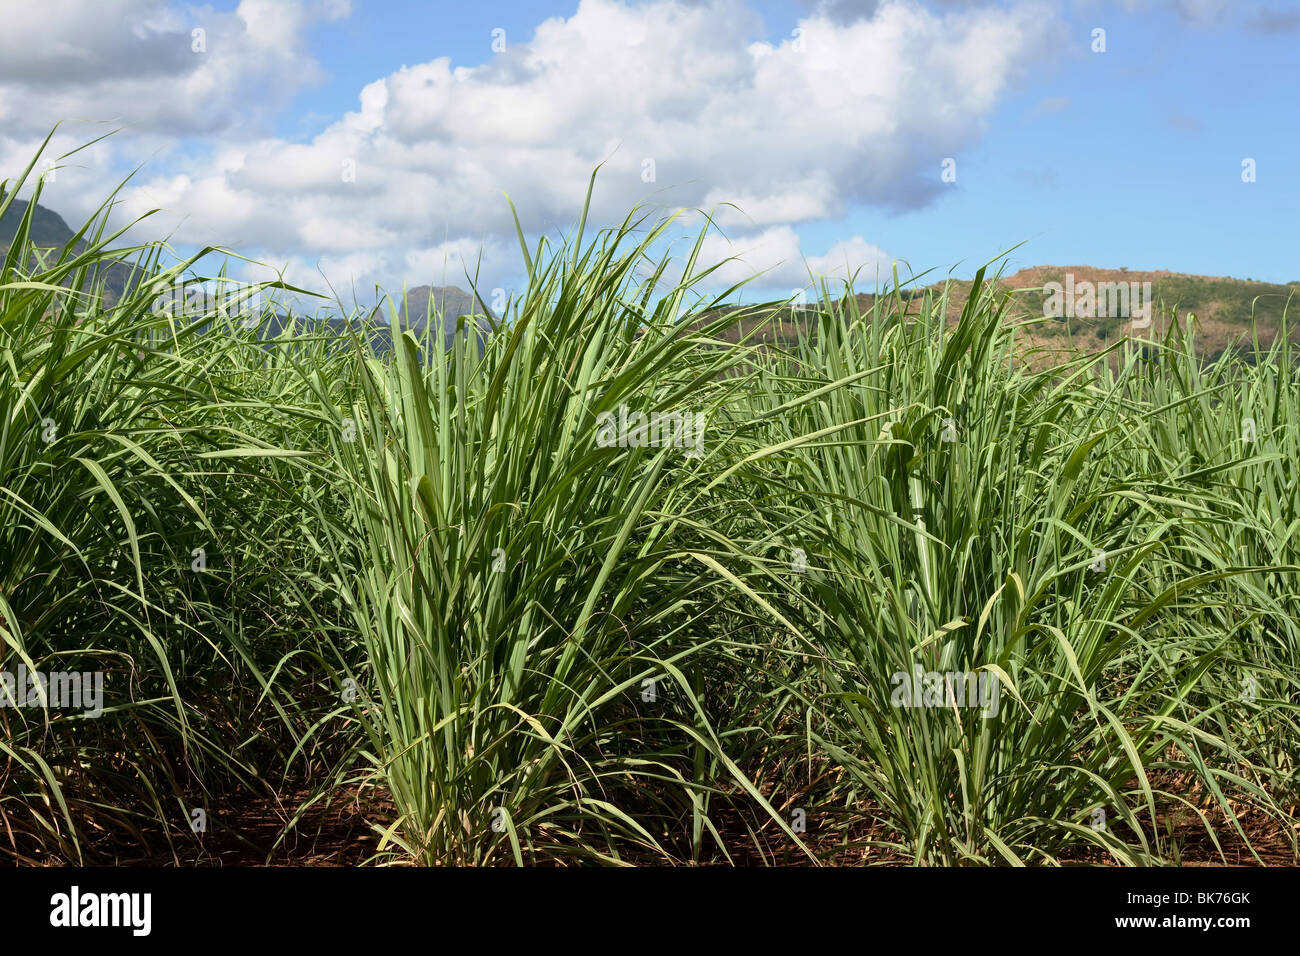 sugarcane plantation on the tropical island of Mauritius with a nice beautiful background. - Stock Image